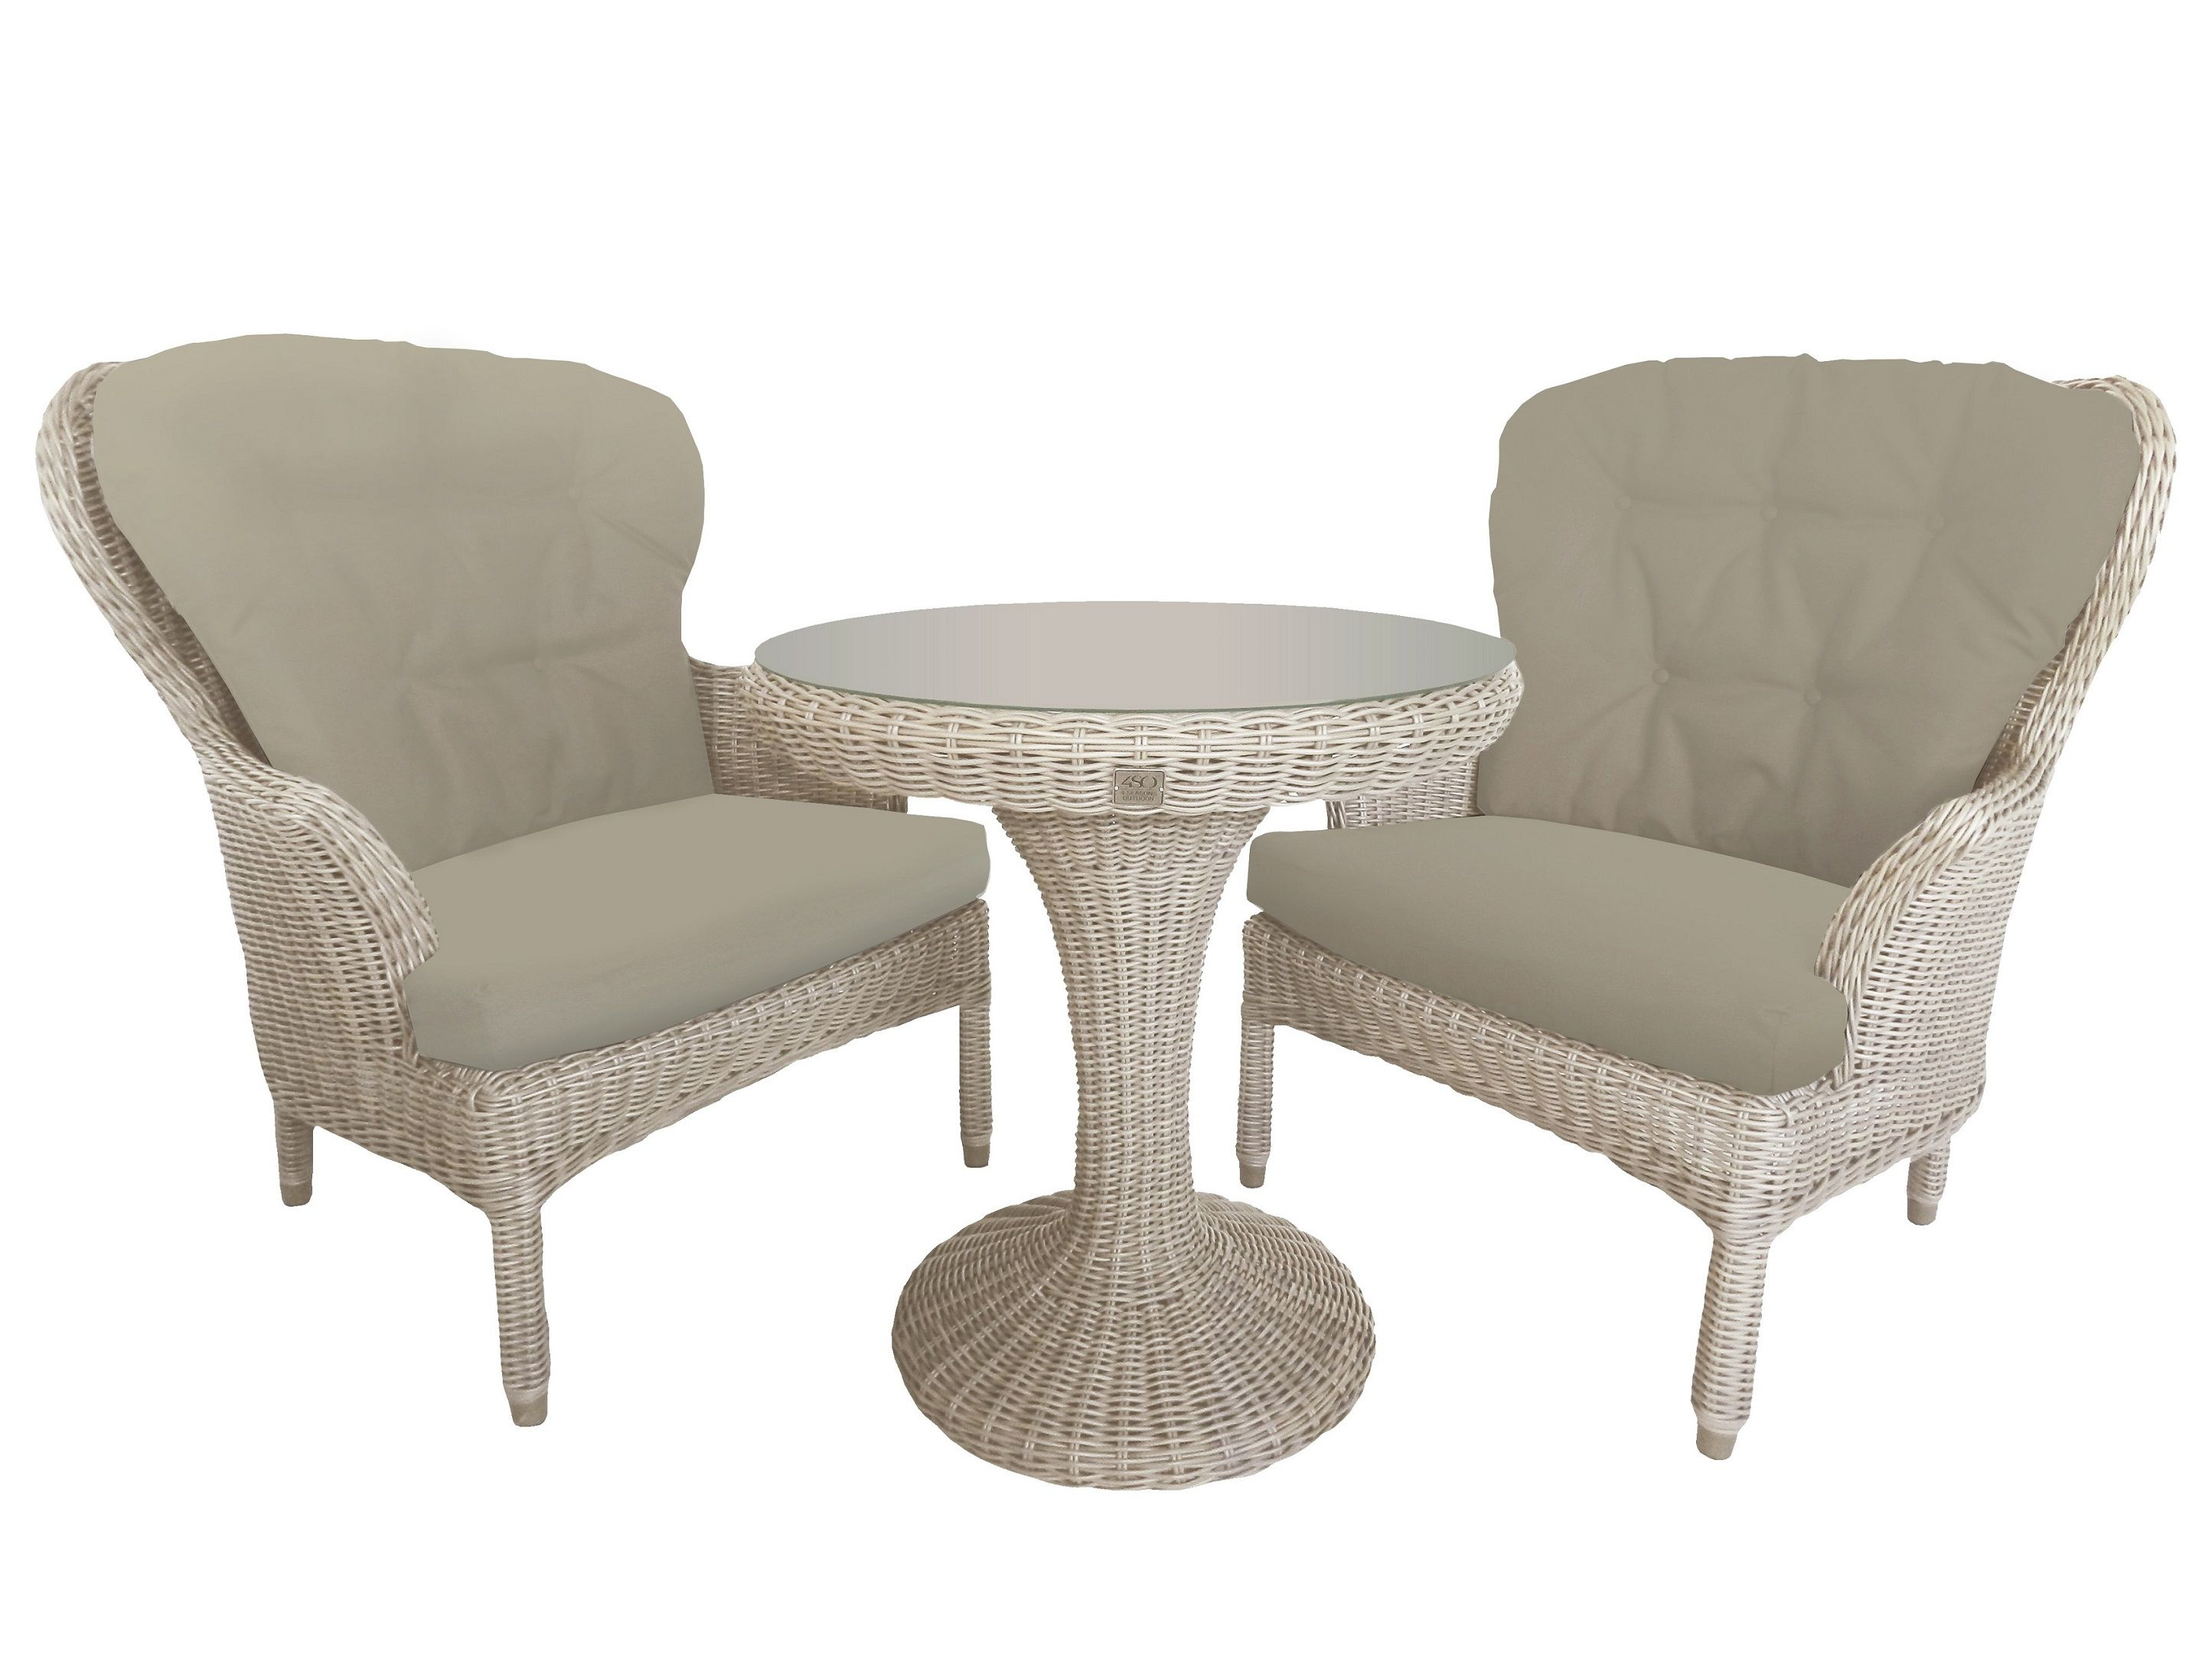 Image of 4 Seasons Outdoor Buckingham Tea For Two Dining Set